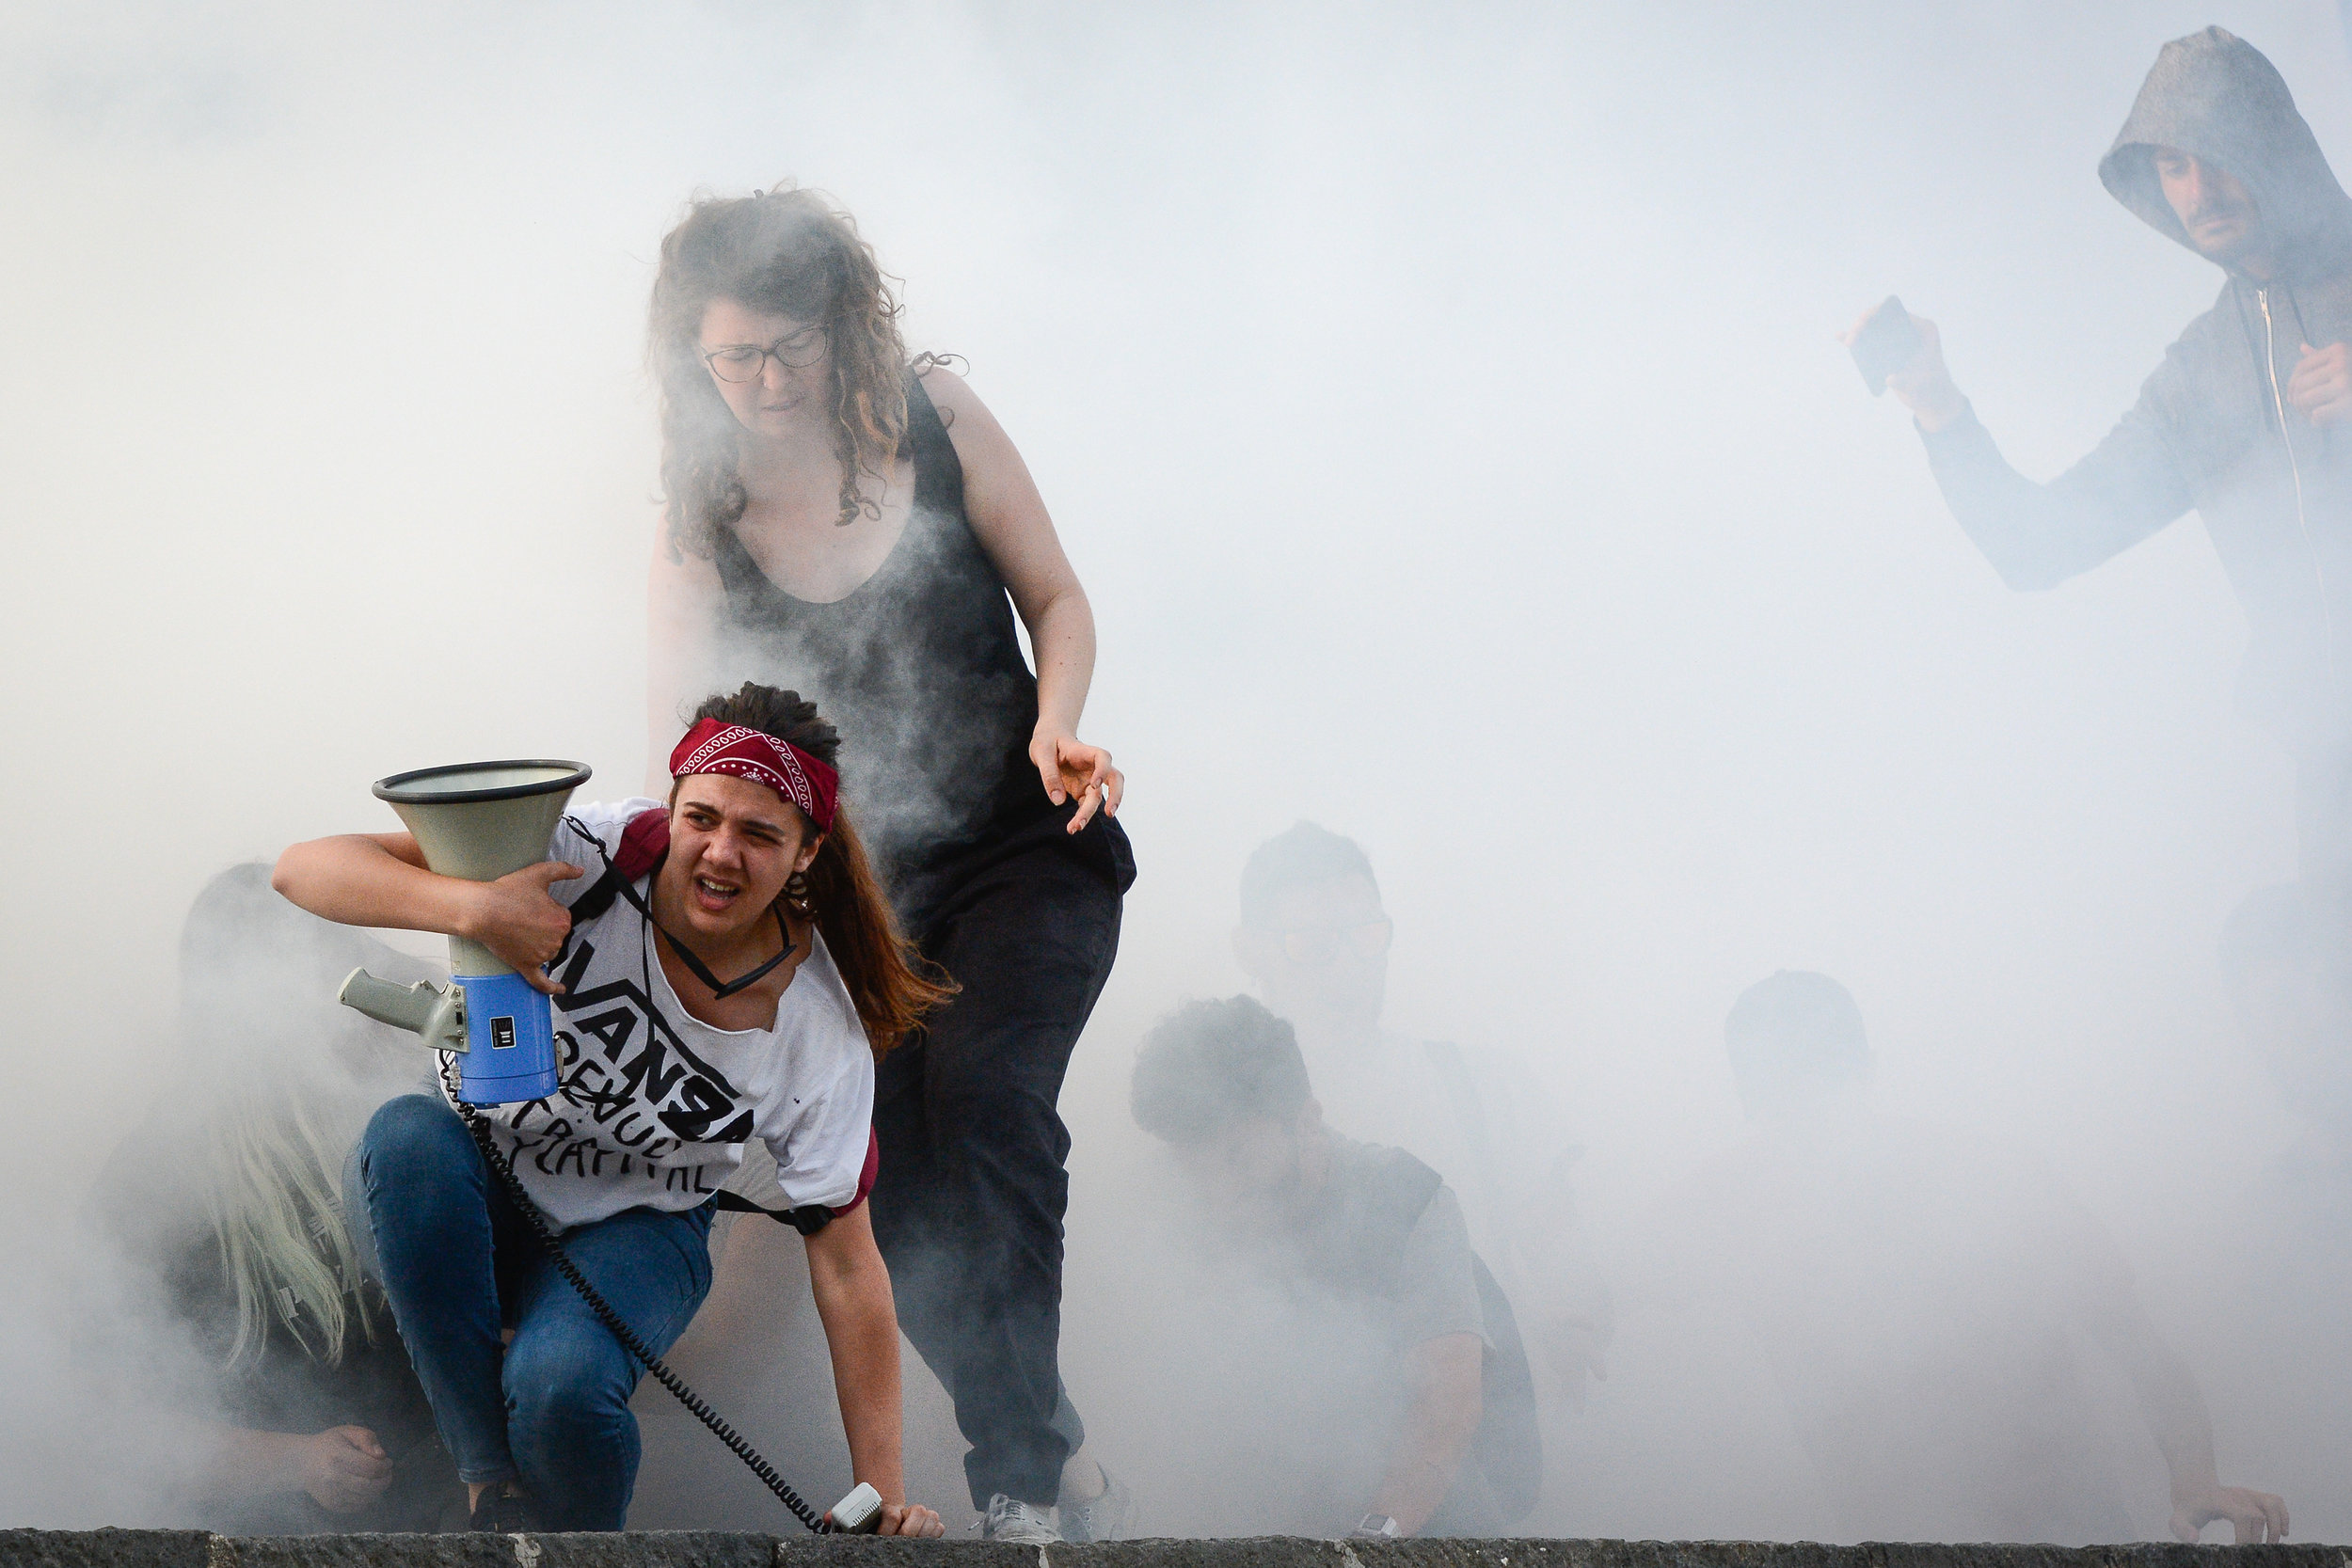 Demonstrators run away from tear gas during a demonstration against the G7 summit in Giardini Naxos, Italy, May 27, 2017.